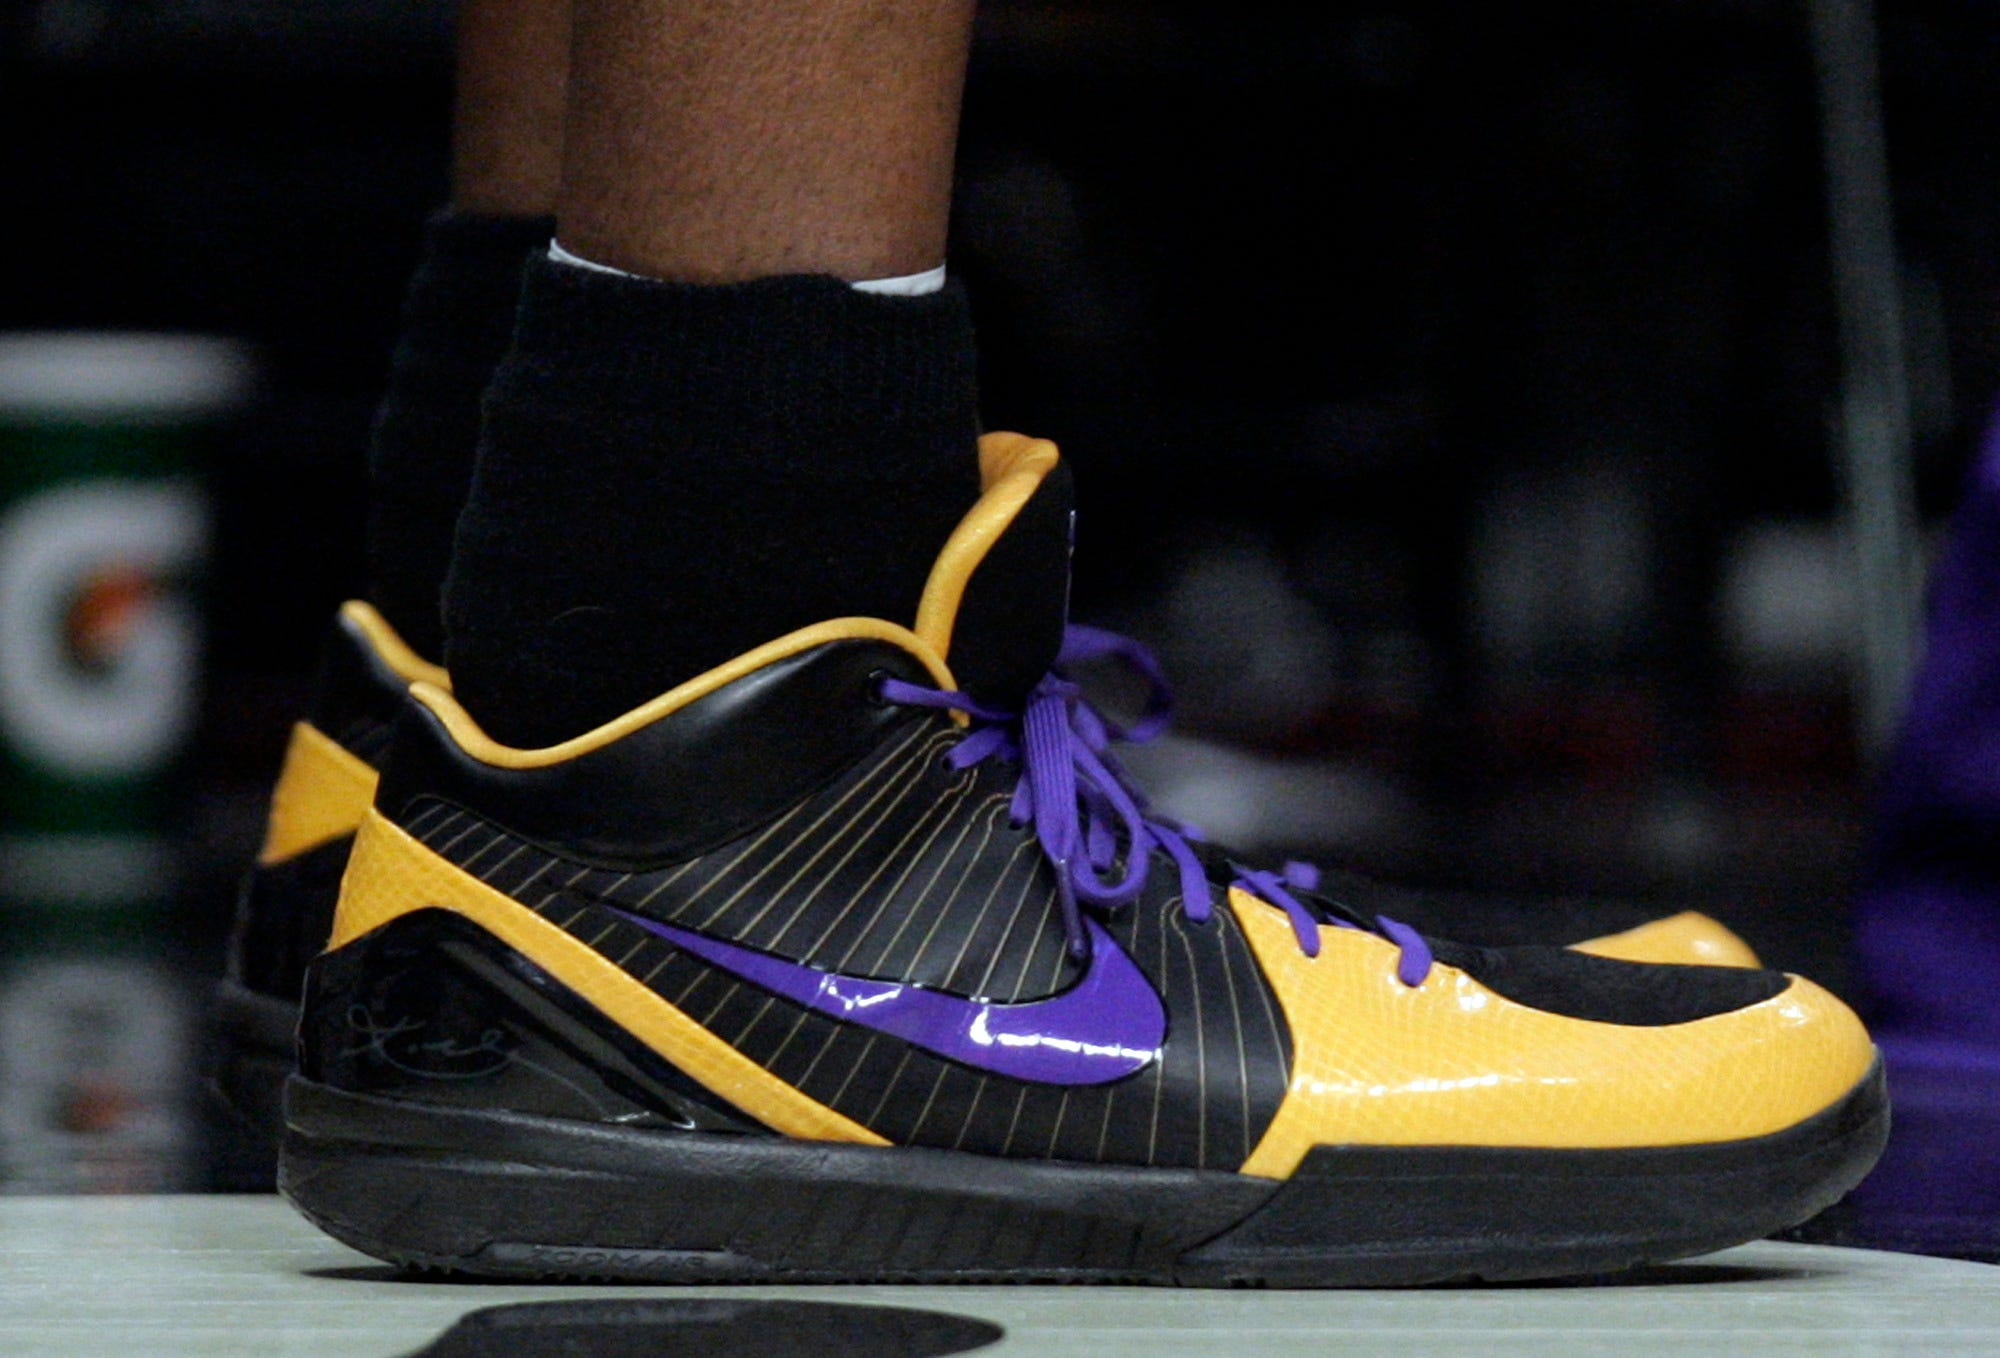 pictures of kobe bryant shoes